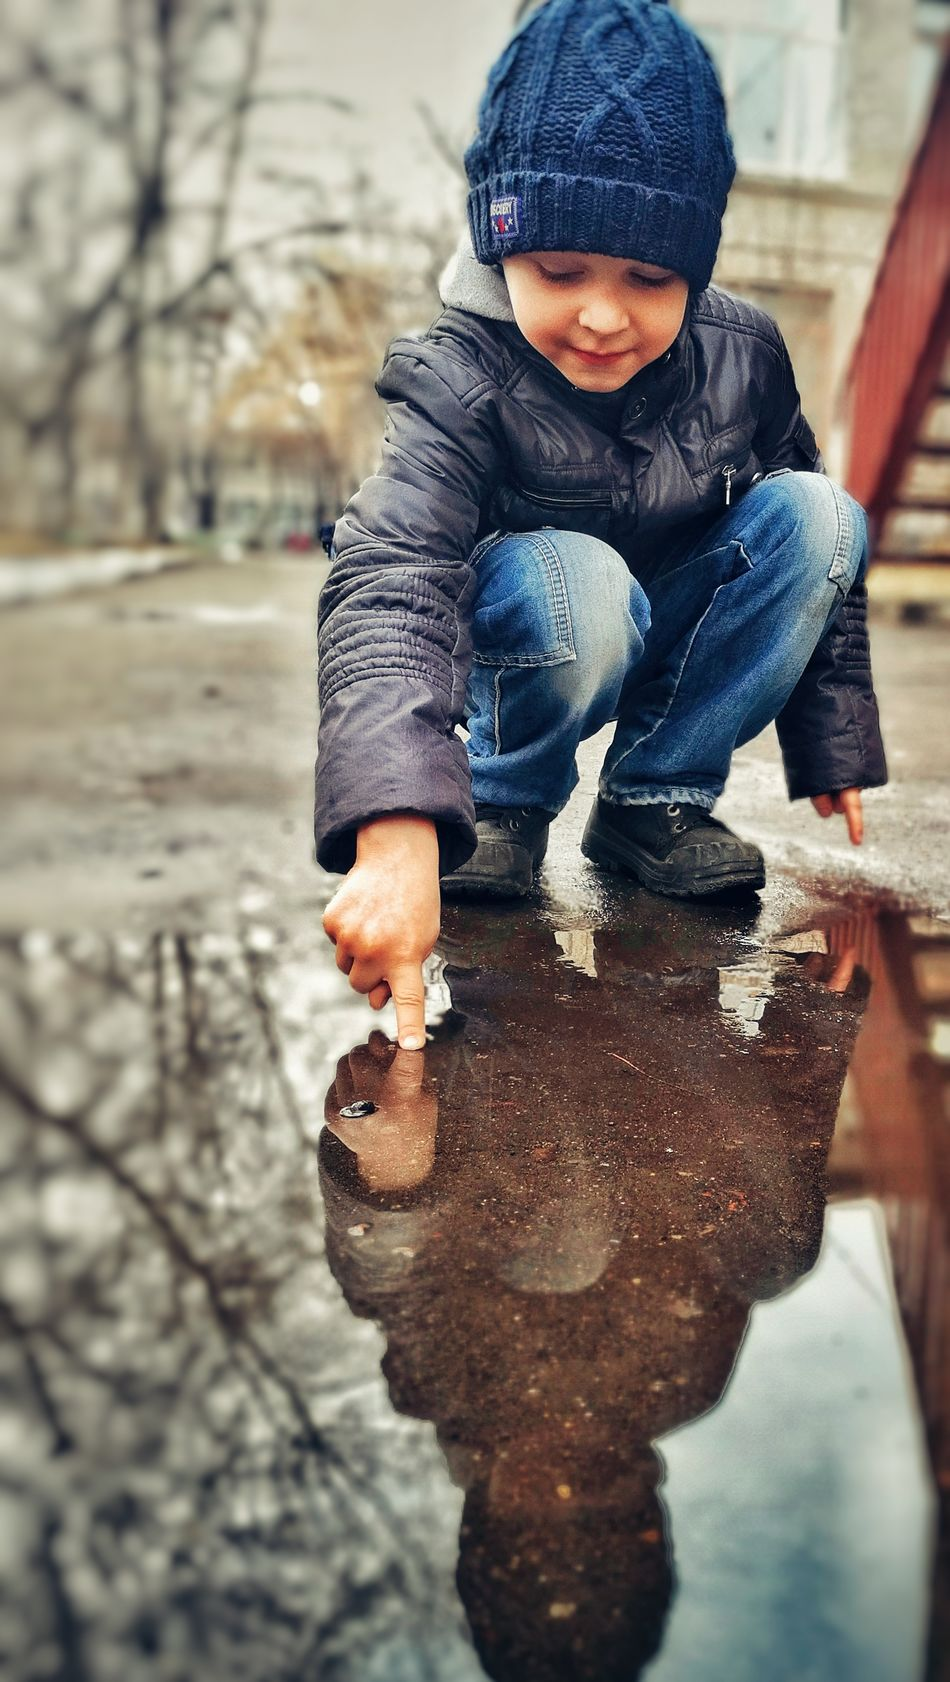 Child Warm Clothing People Full Length One Person Outdoors Day Children Only Boys Lifestyles Real Life Real People Close-up Happiness Multi Colored Rain Water Reflection Portrait Beautiful People